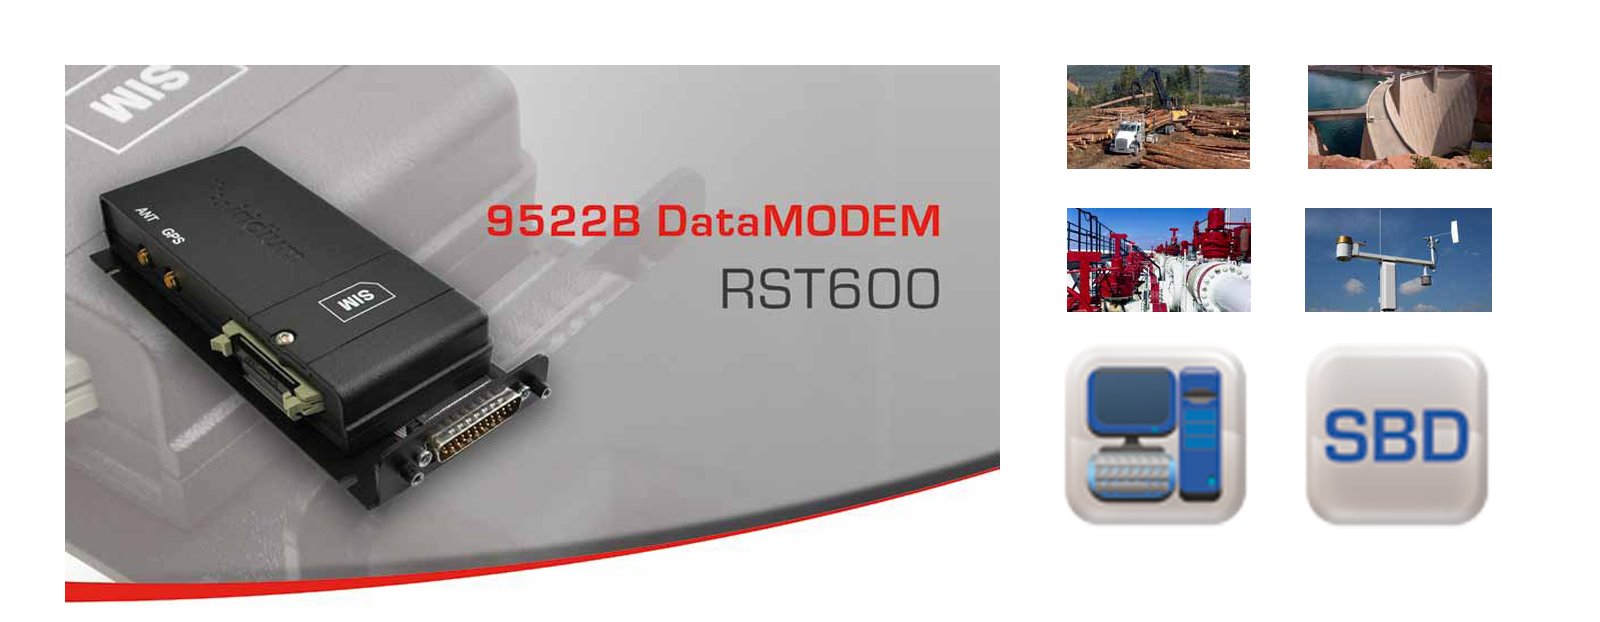 beam-rst600-data-modem-appl.jpg